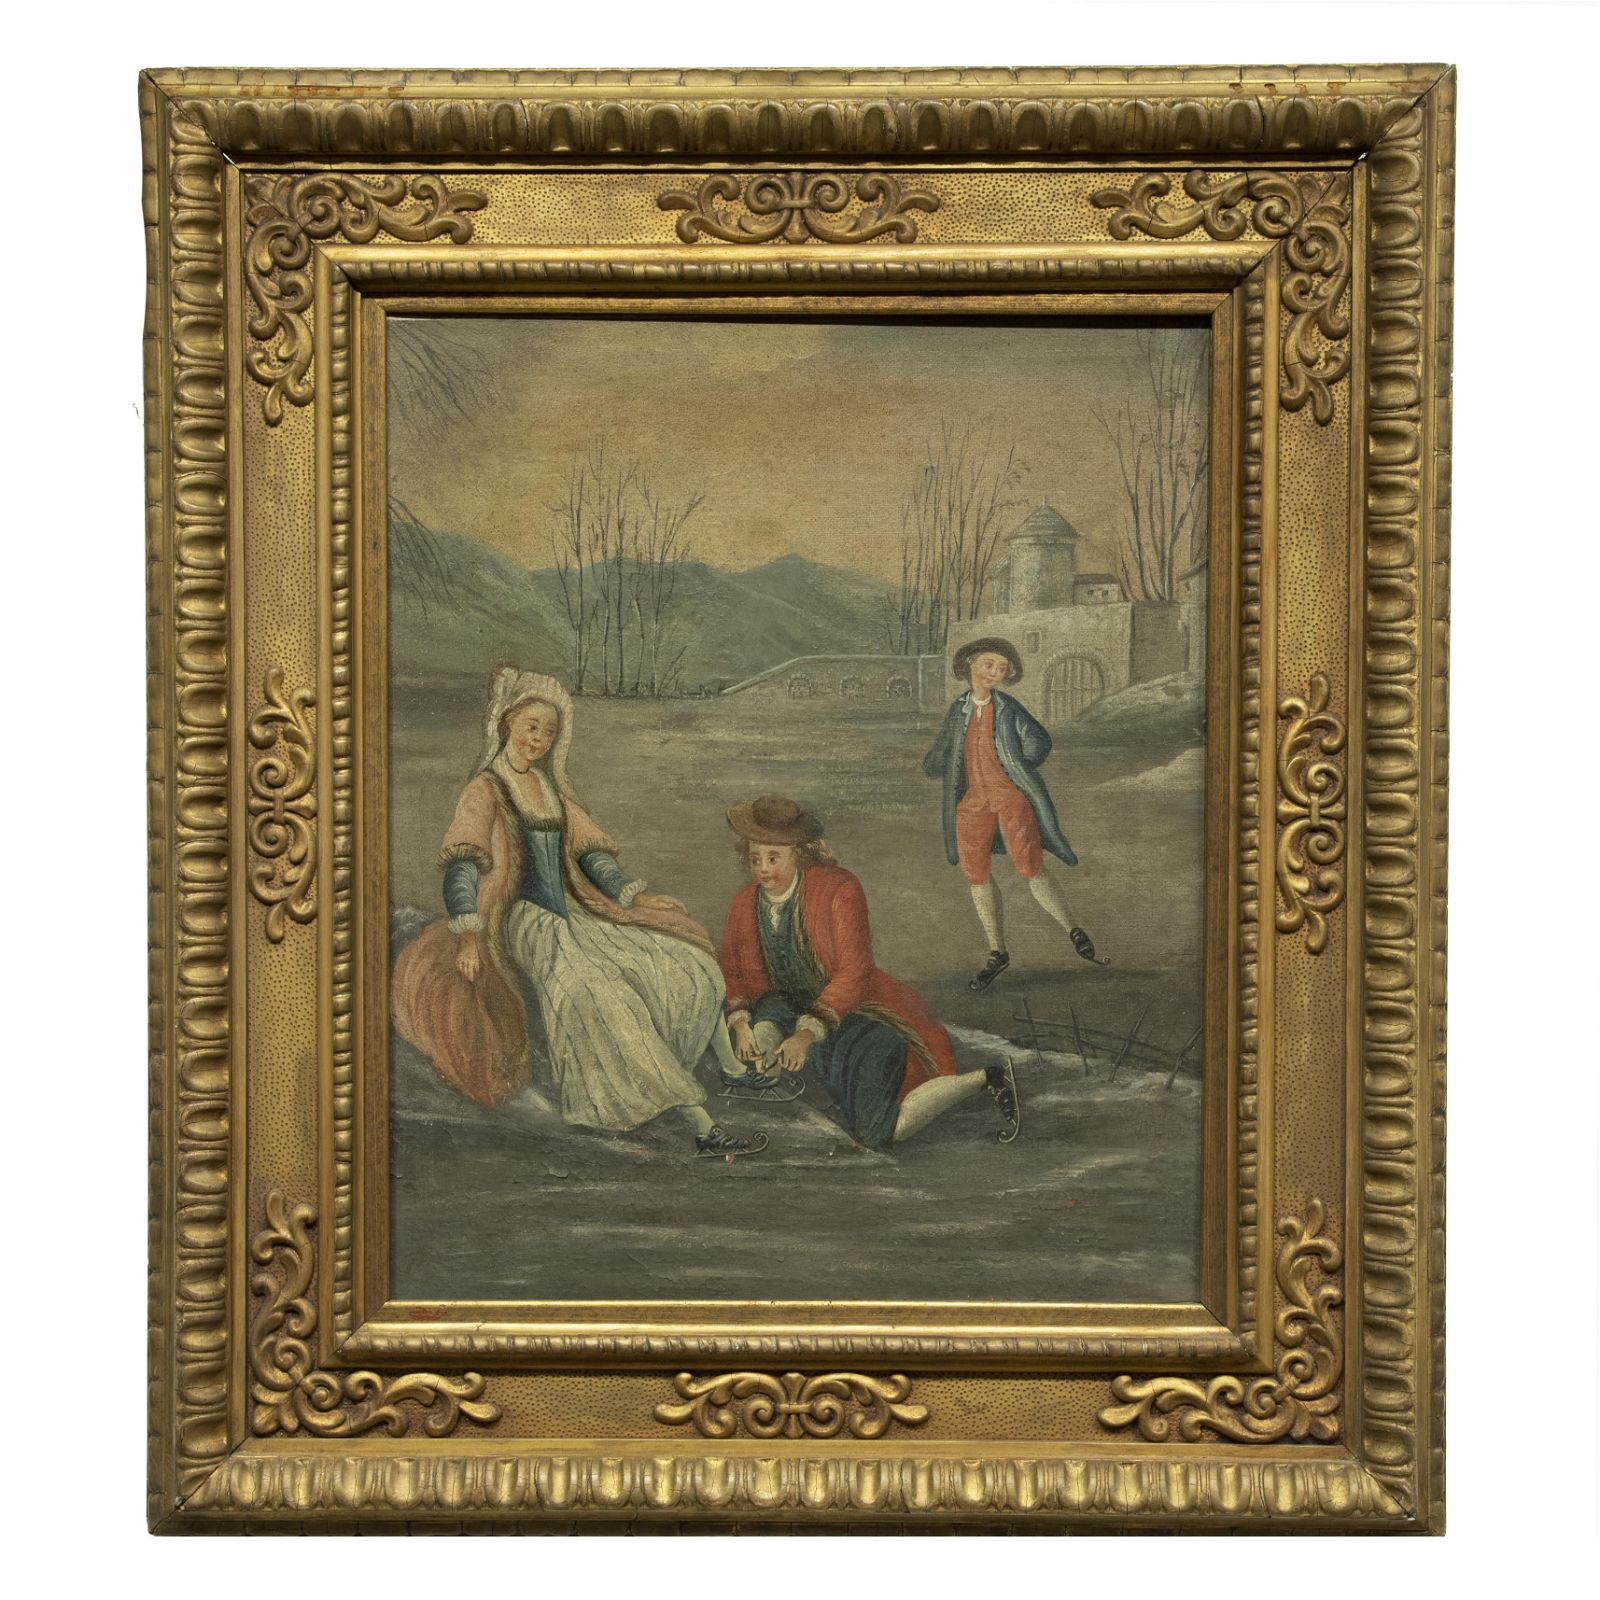 Oil on Canvas Painting, Ice Skating on a Lake